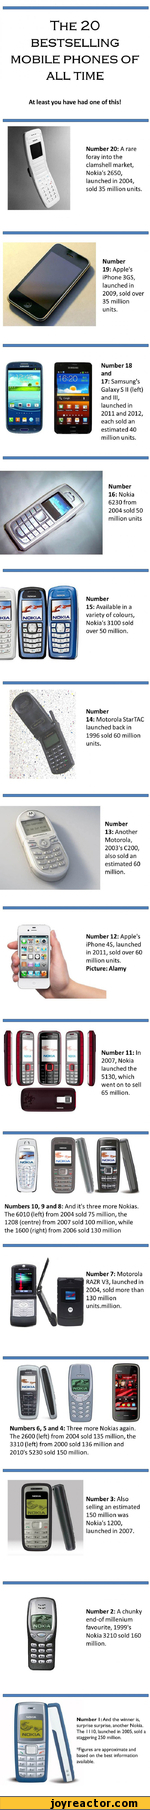 The 20BESTSELLING MOBILE PHONES OFALL TIMEAt least you have had one of this!Number 20: A rare foray into the clamshell market, Nokia's 2650, launched in 2004, sold 35 million units.Number19: Apple's iPhone 3GS, launched in 2009, sold over 35 million units.M-SAMSUNGA I 16 2016:20 S,Number 18 and17: